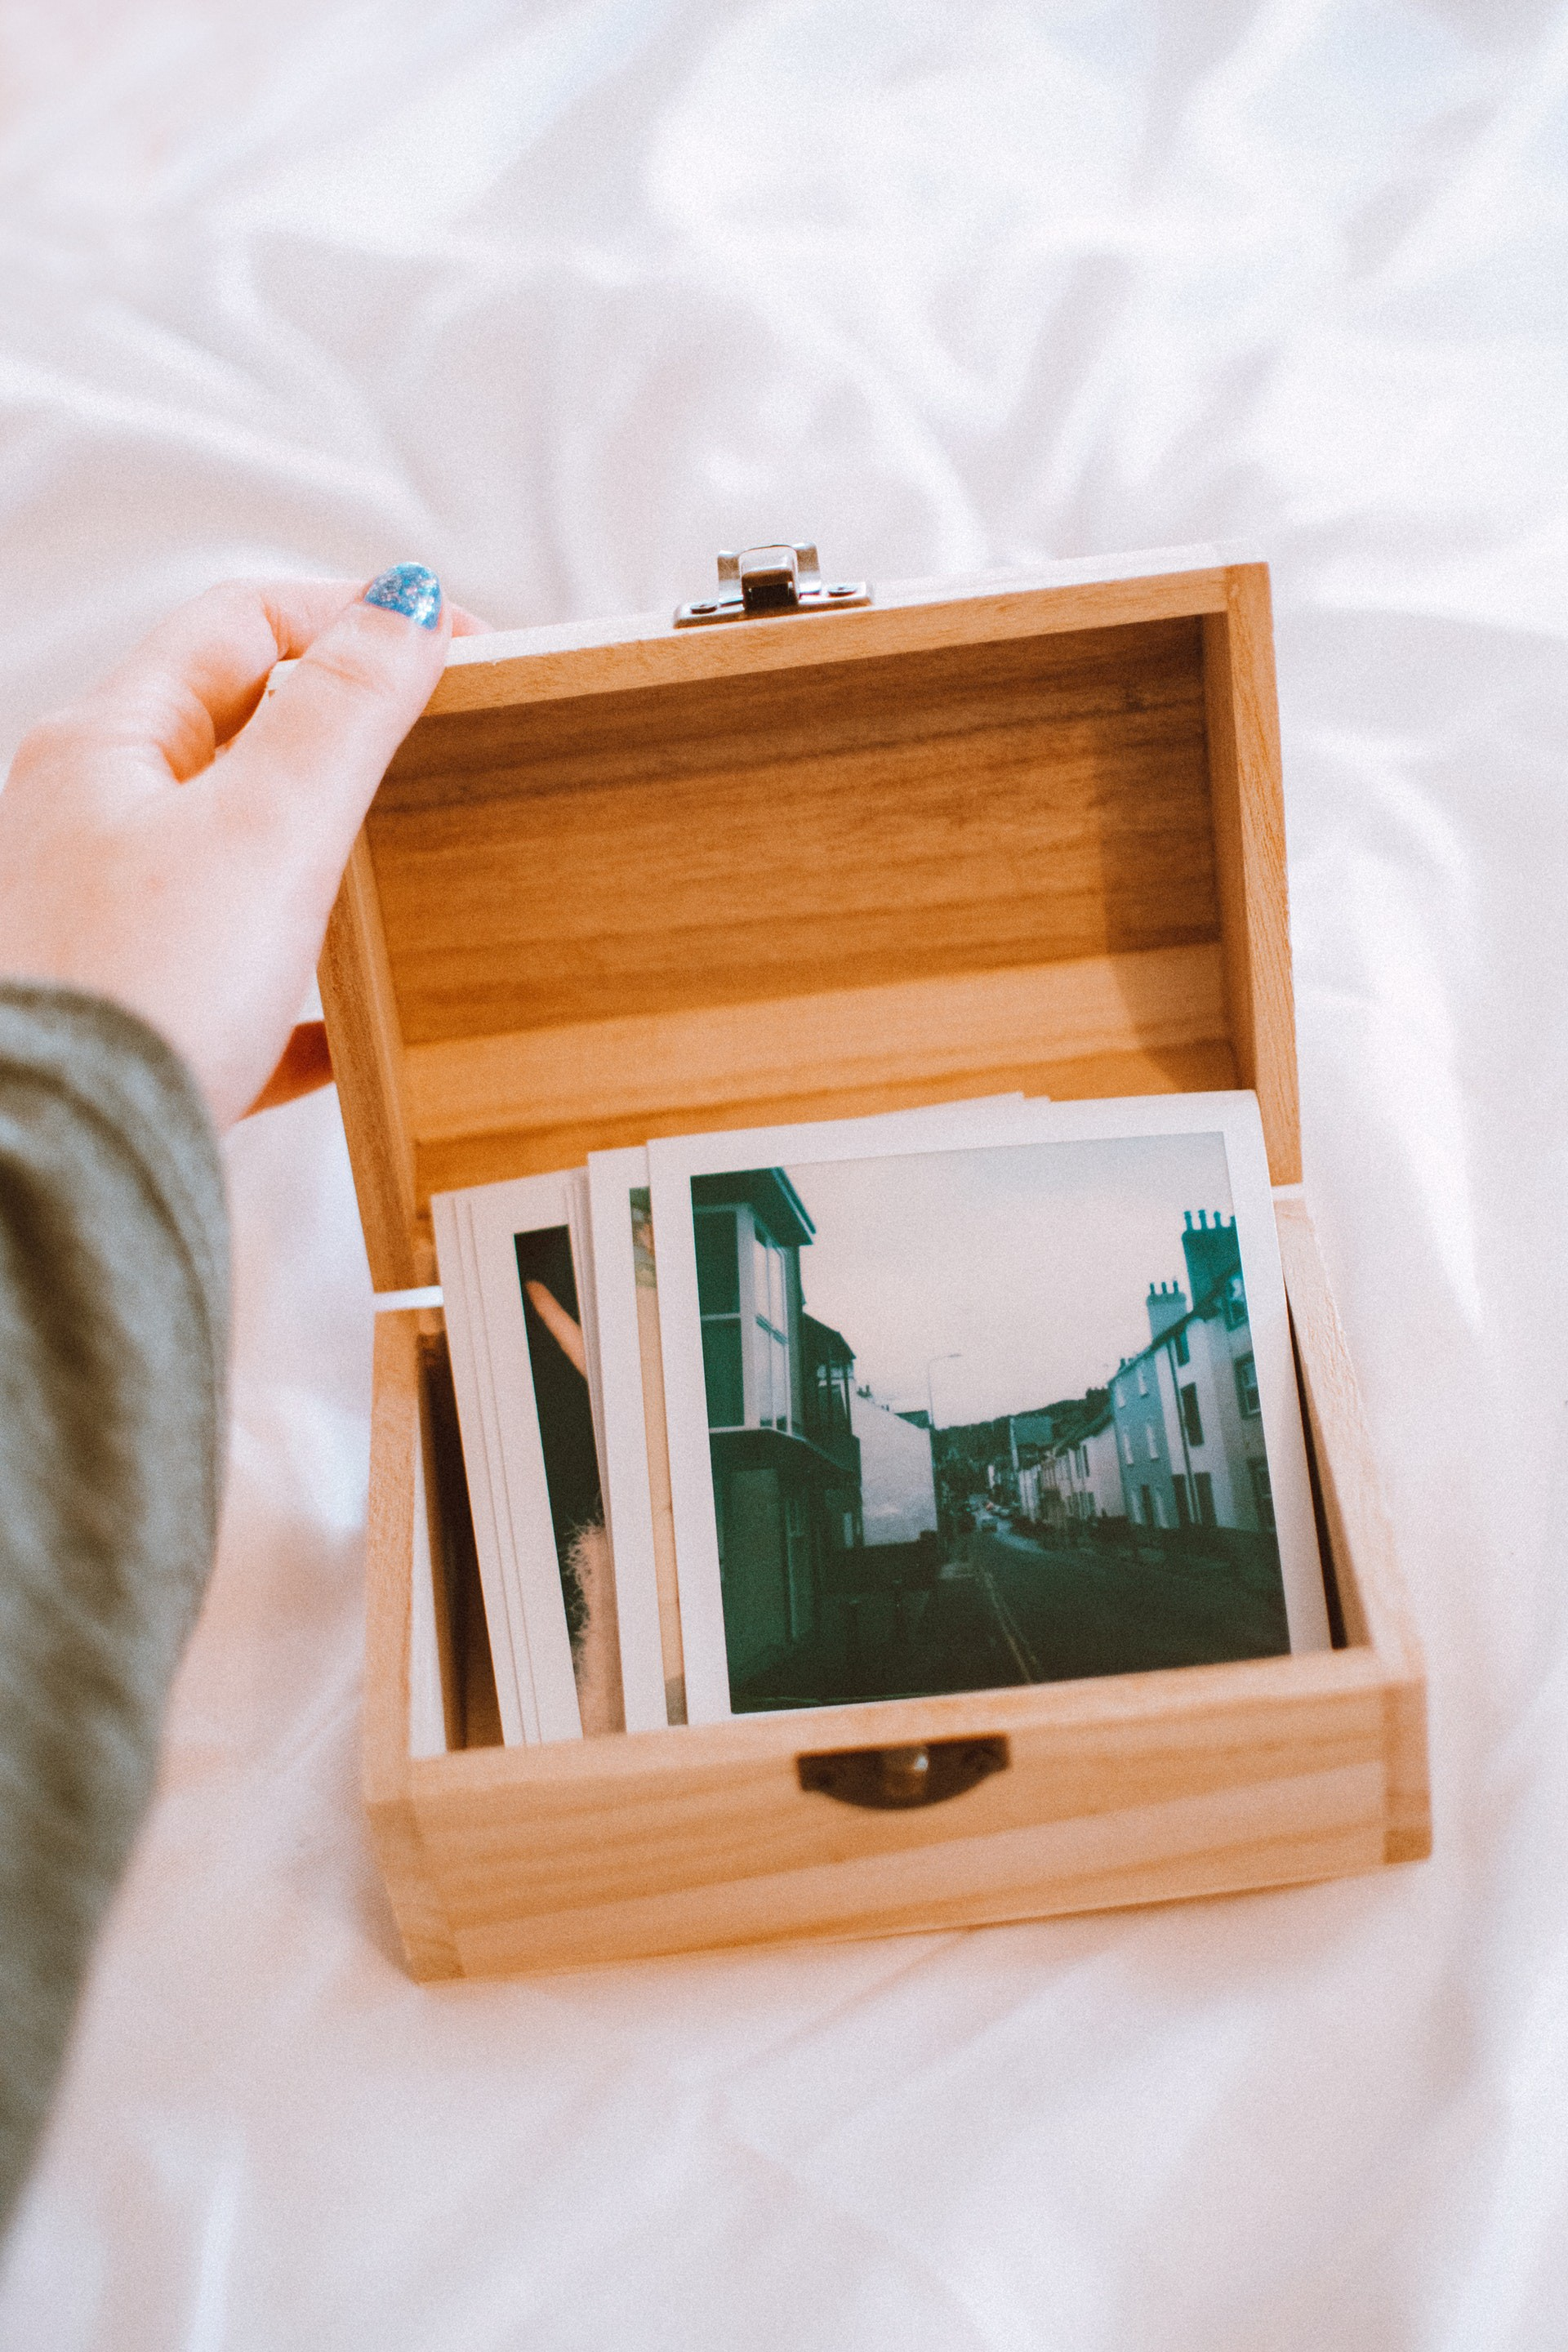 Hand opening wooden box of photographs